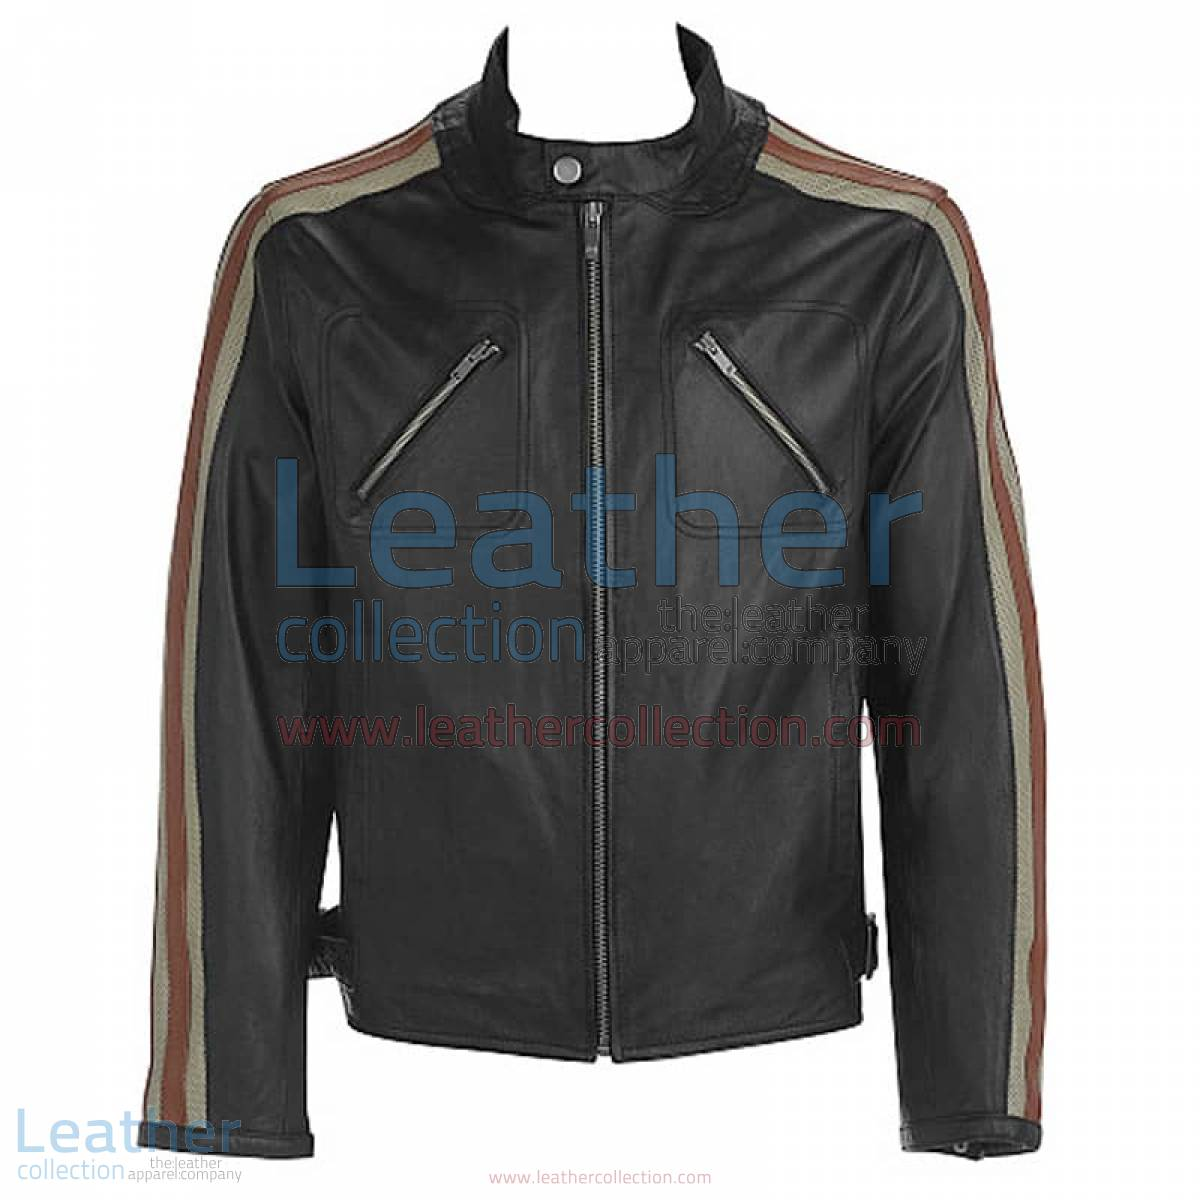 Leather Jacket With Stripes on Sleeves